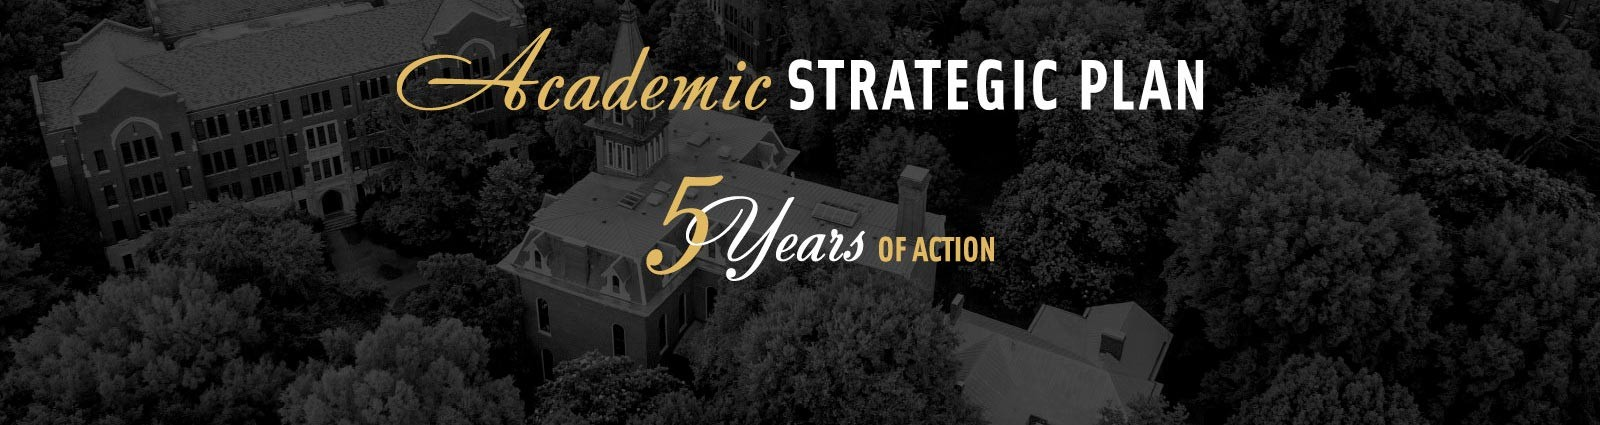 Academic Strategic Plan's five-year progress report shows transformative impact.